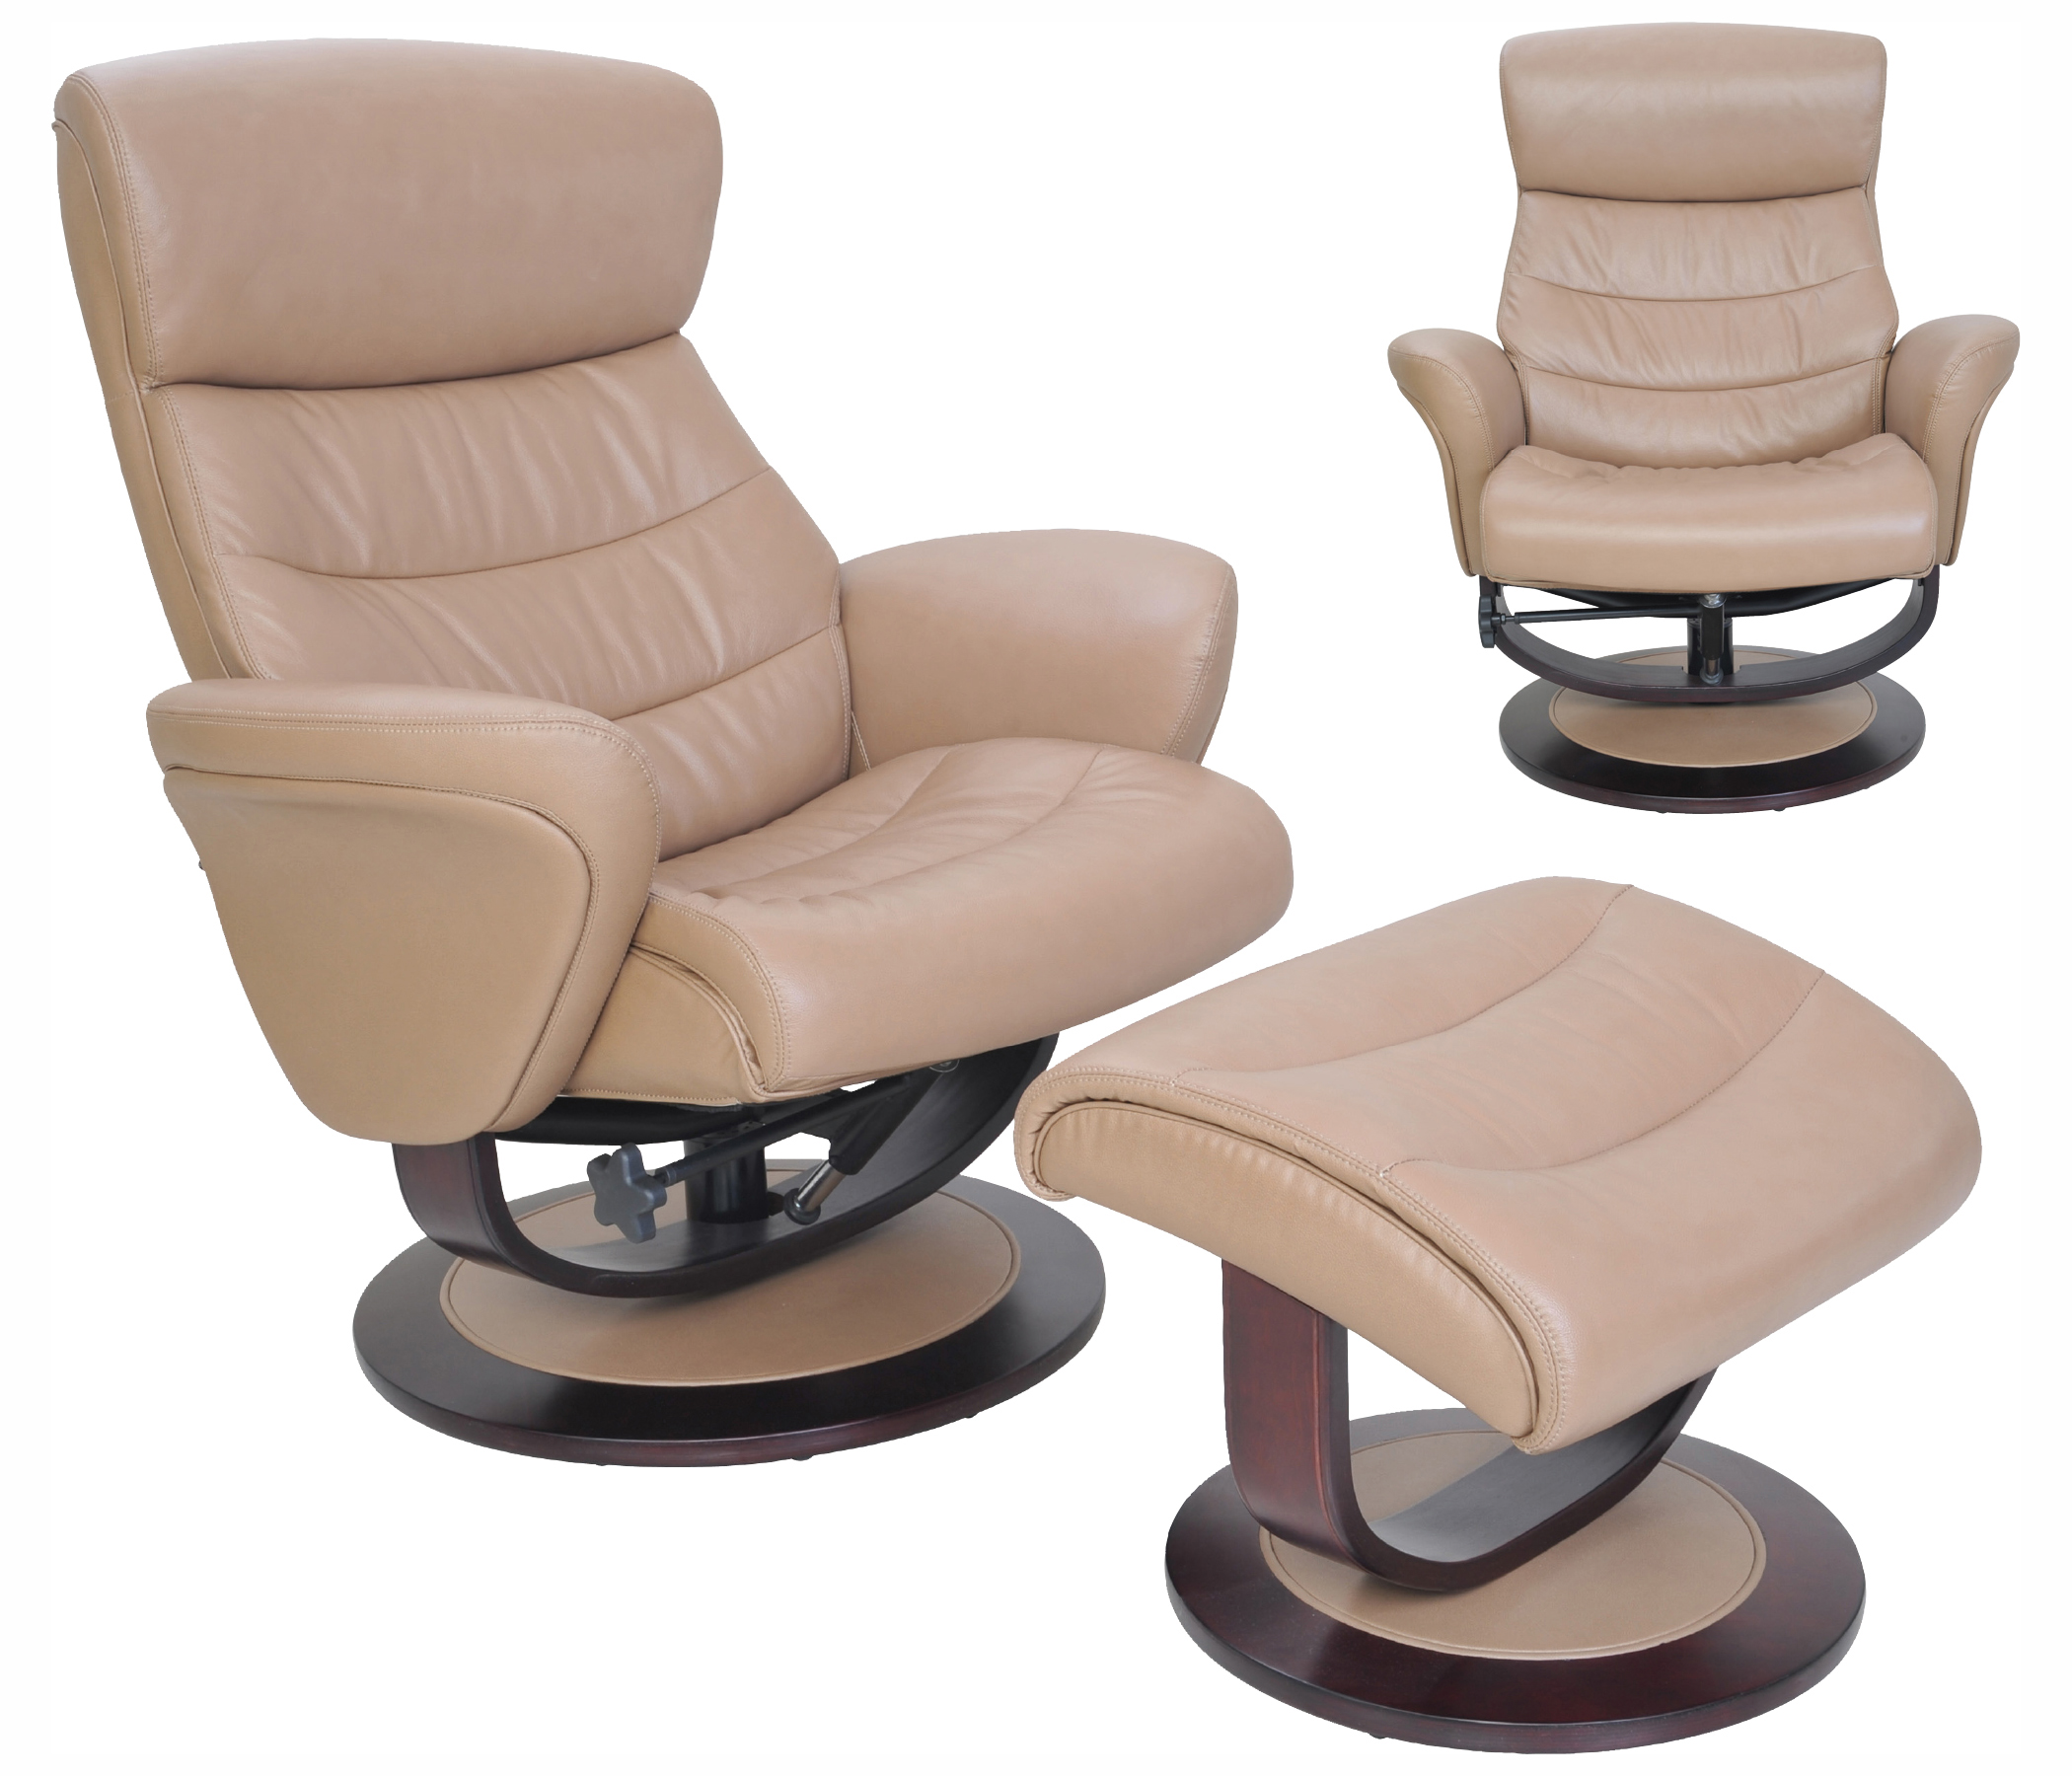 Leather Recliner Chair With Ottoman Details About Barcalounger Tetra Frampton Beech Leather Pedestal Recliner Chair And Ottoman